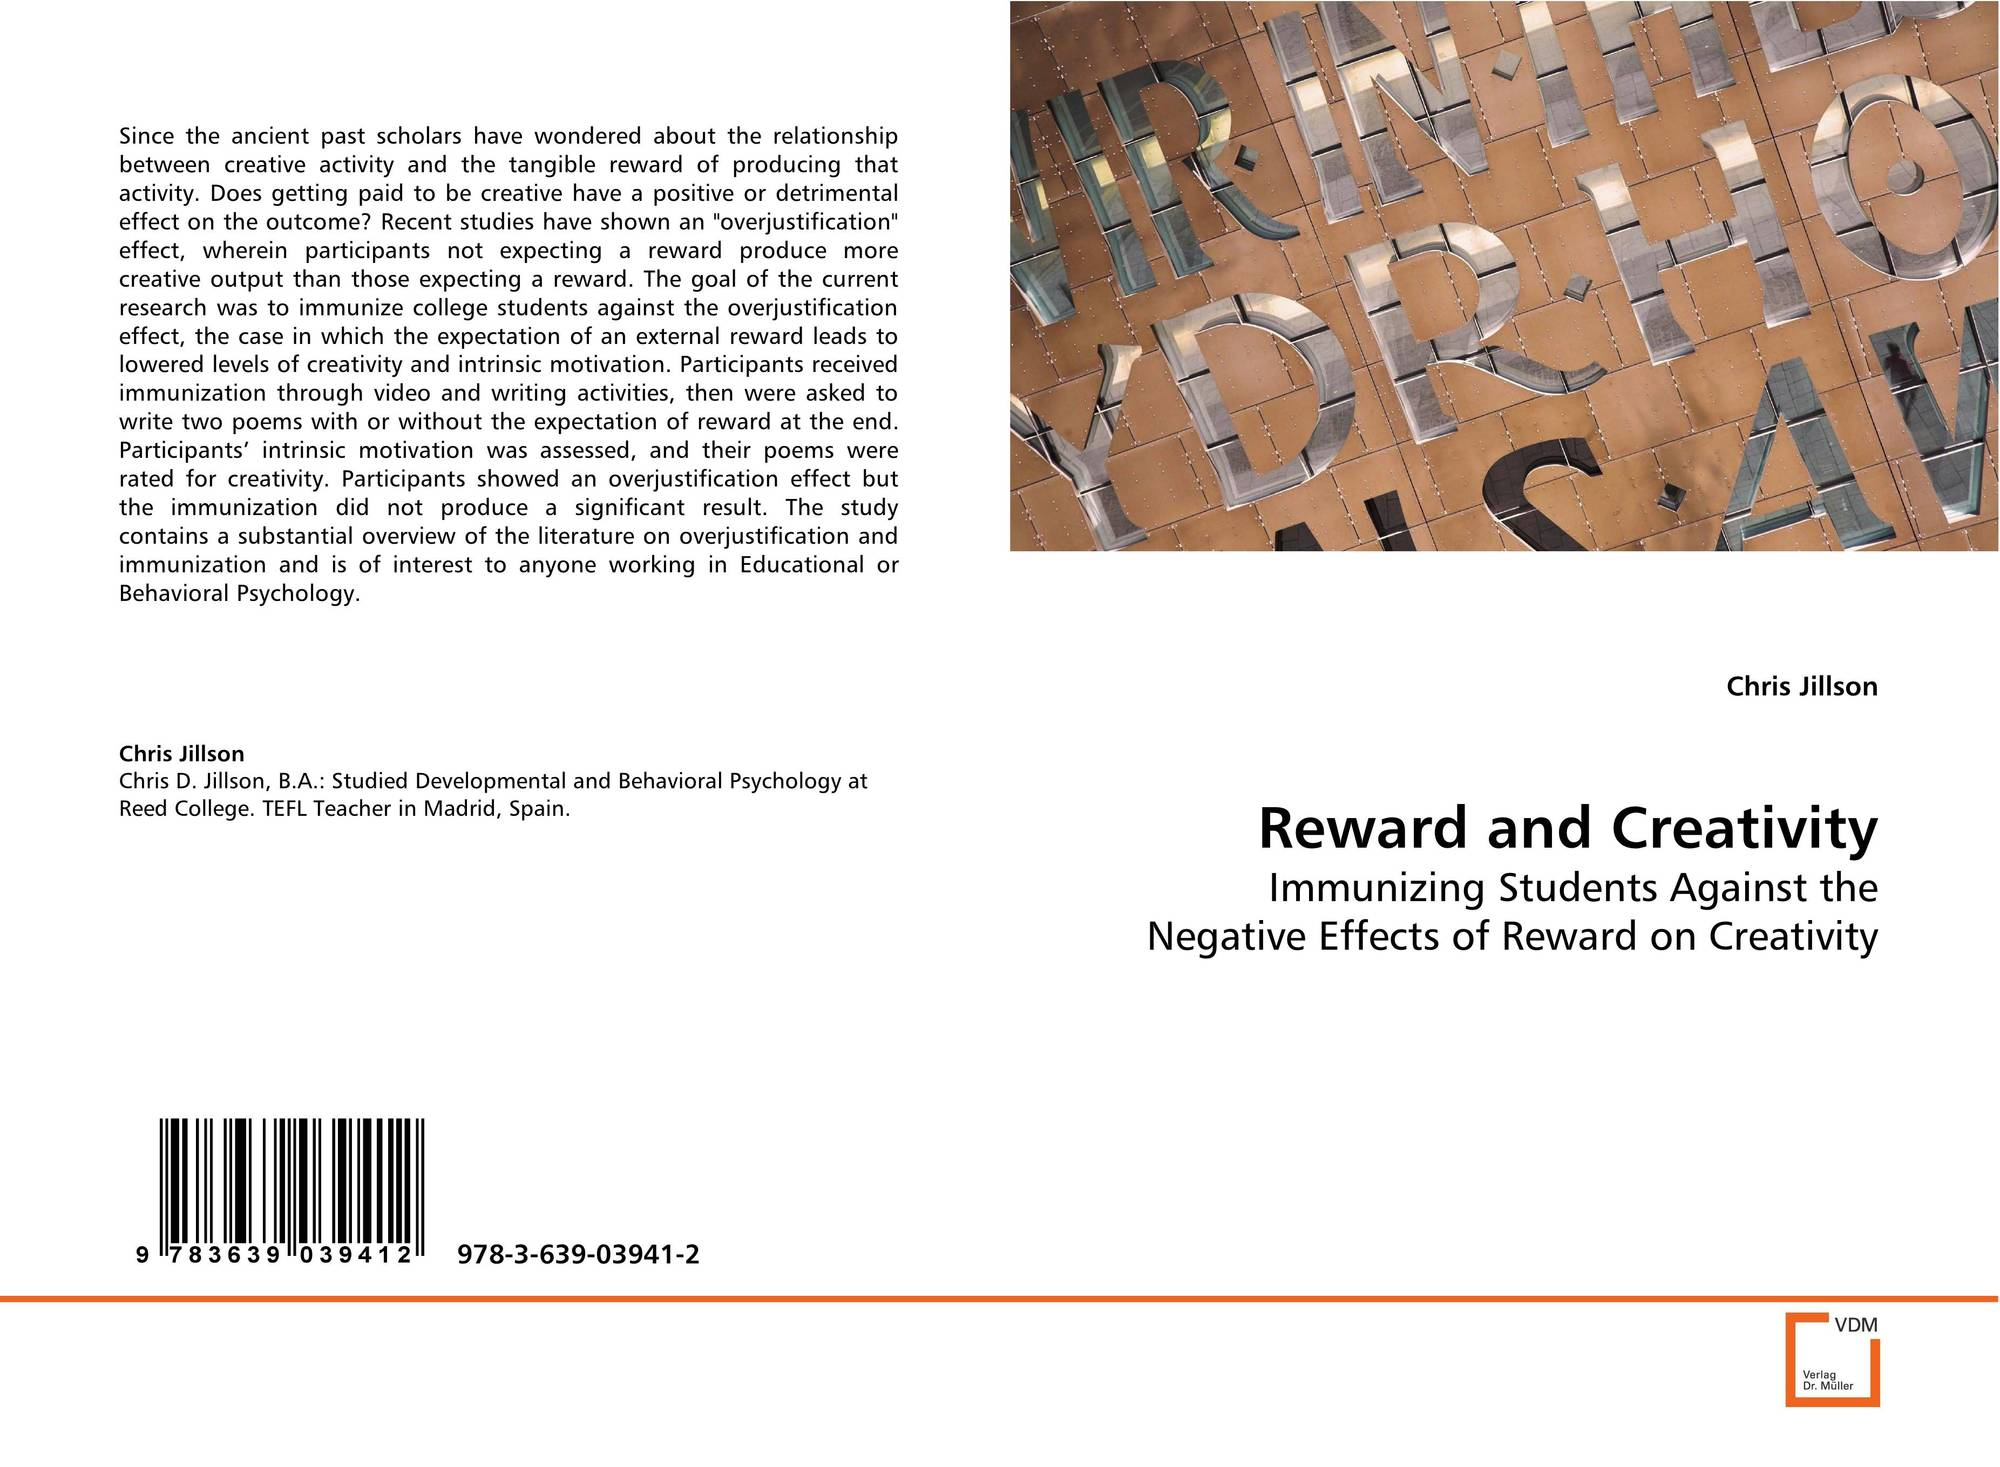 reward and incentive systems of Assessment of reward and incentive systems in performance of public organizations: a case study of kenya airports authority (kaa.